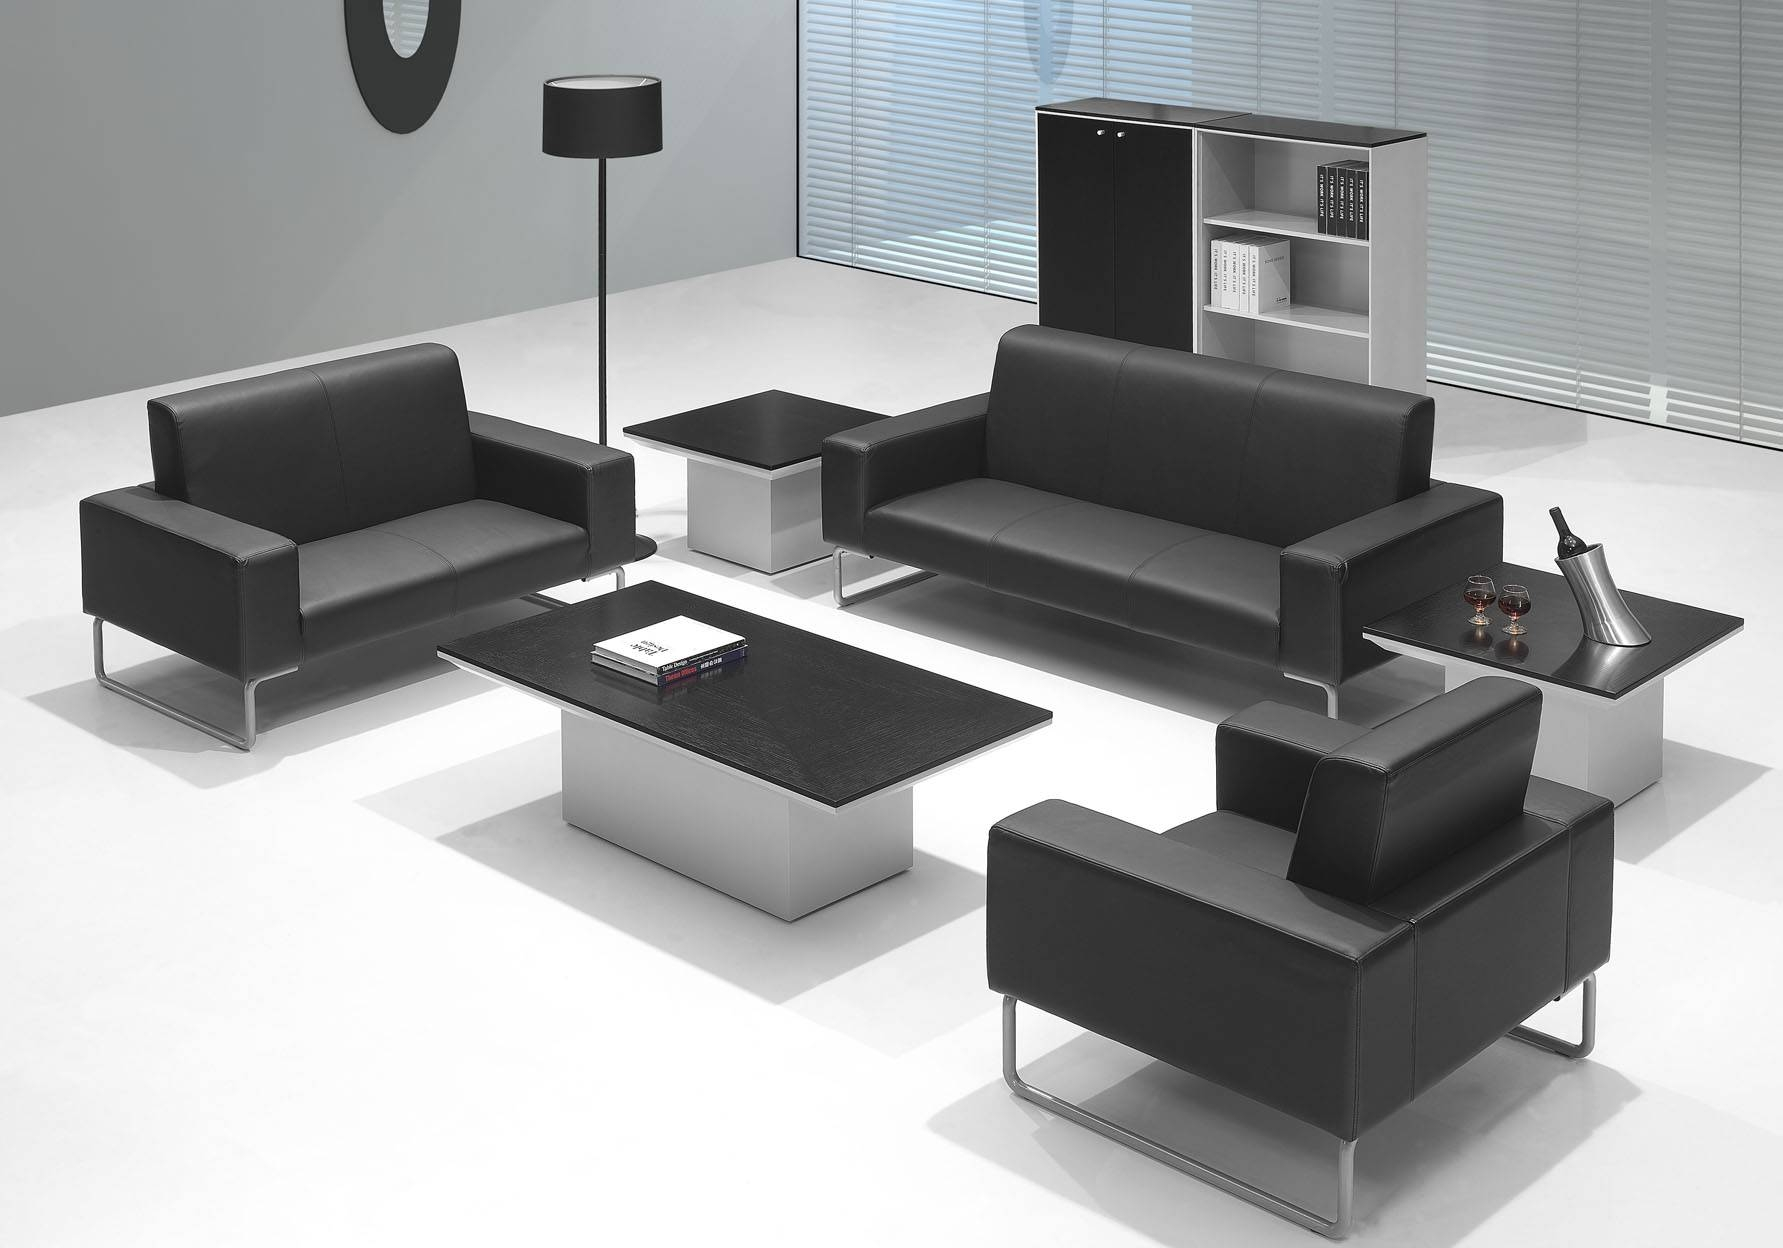 Office Furniture Sofa Design | Sofas Decoration within Office Sofas And Chairs (Image 4 of 15)